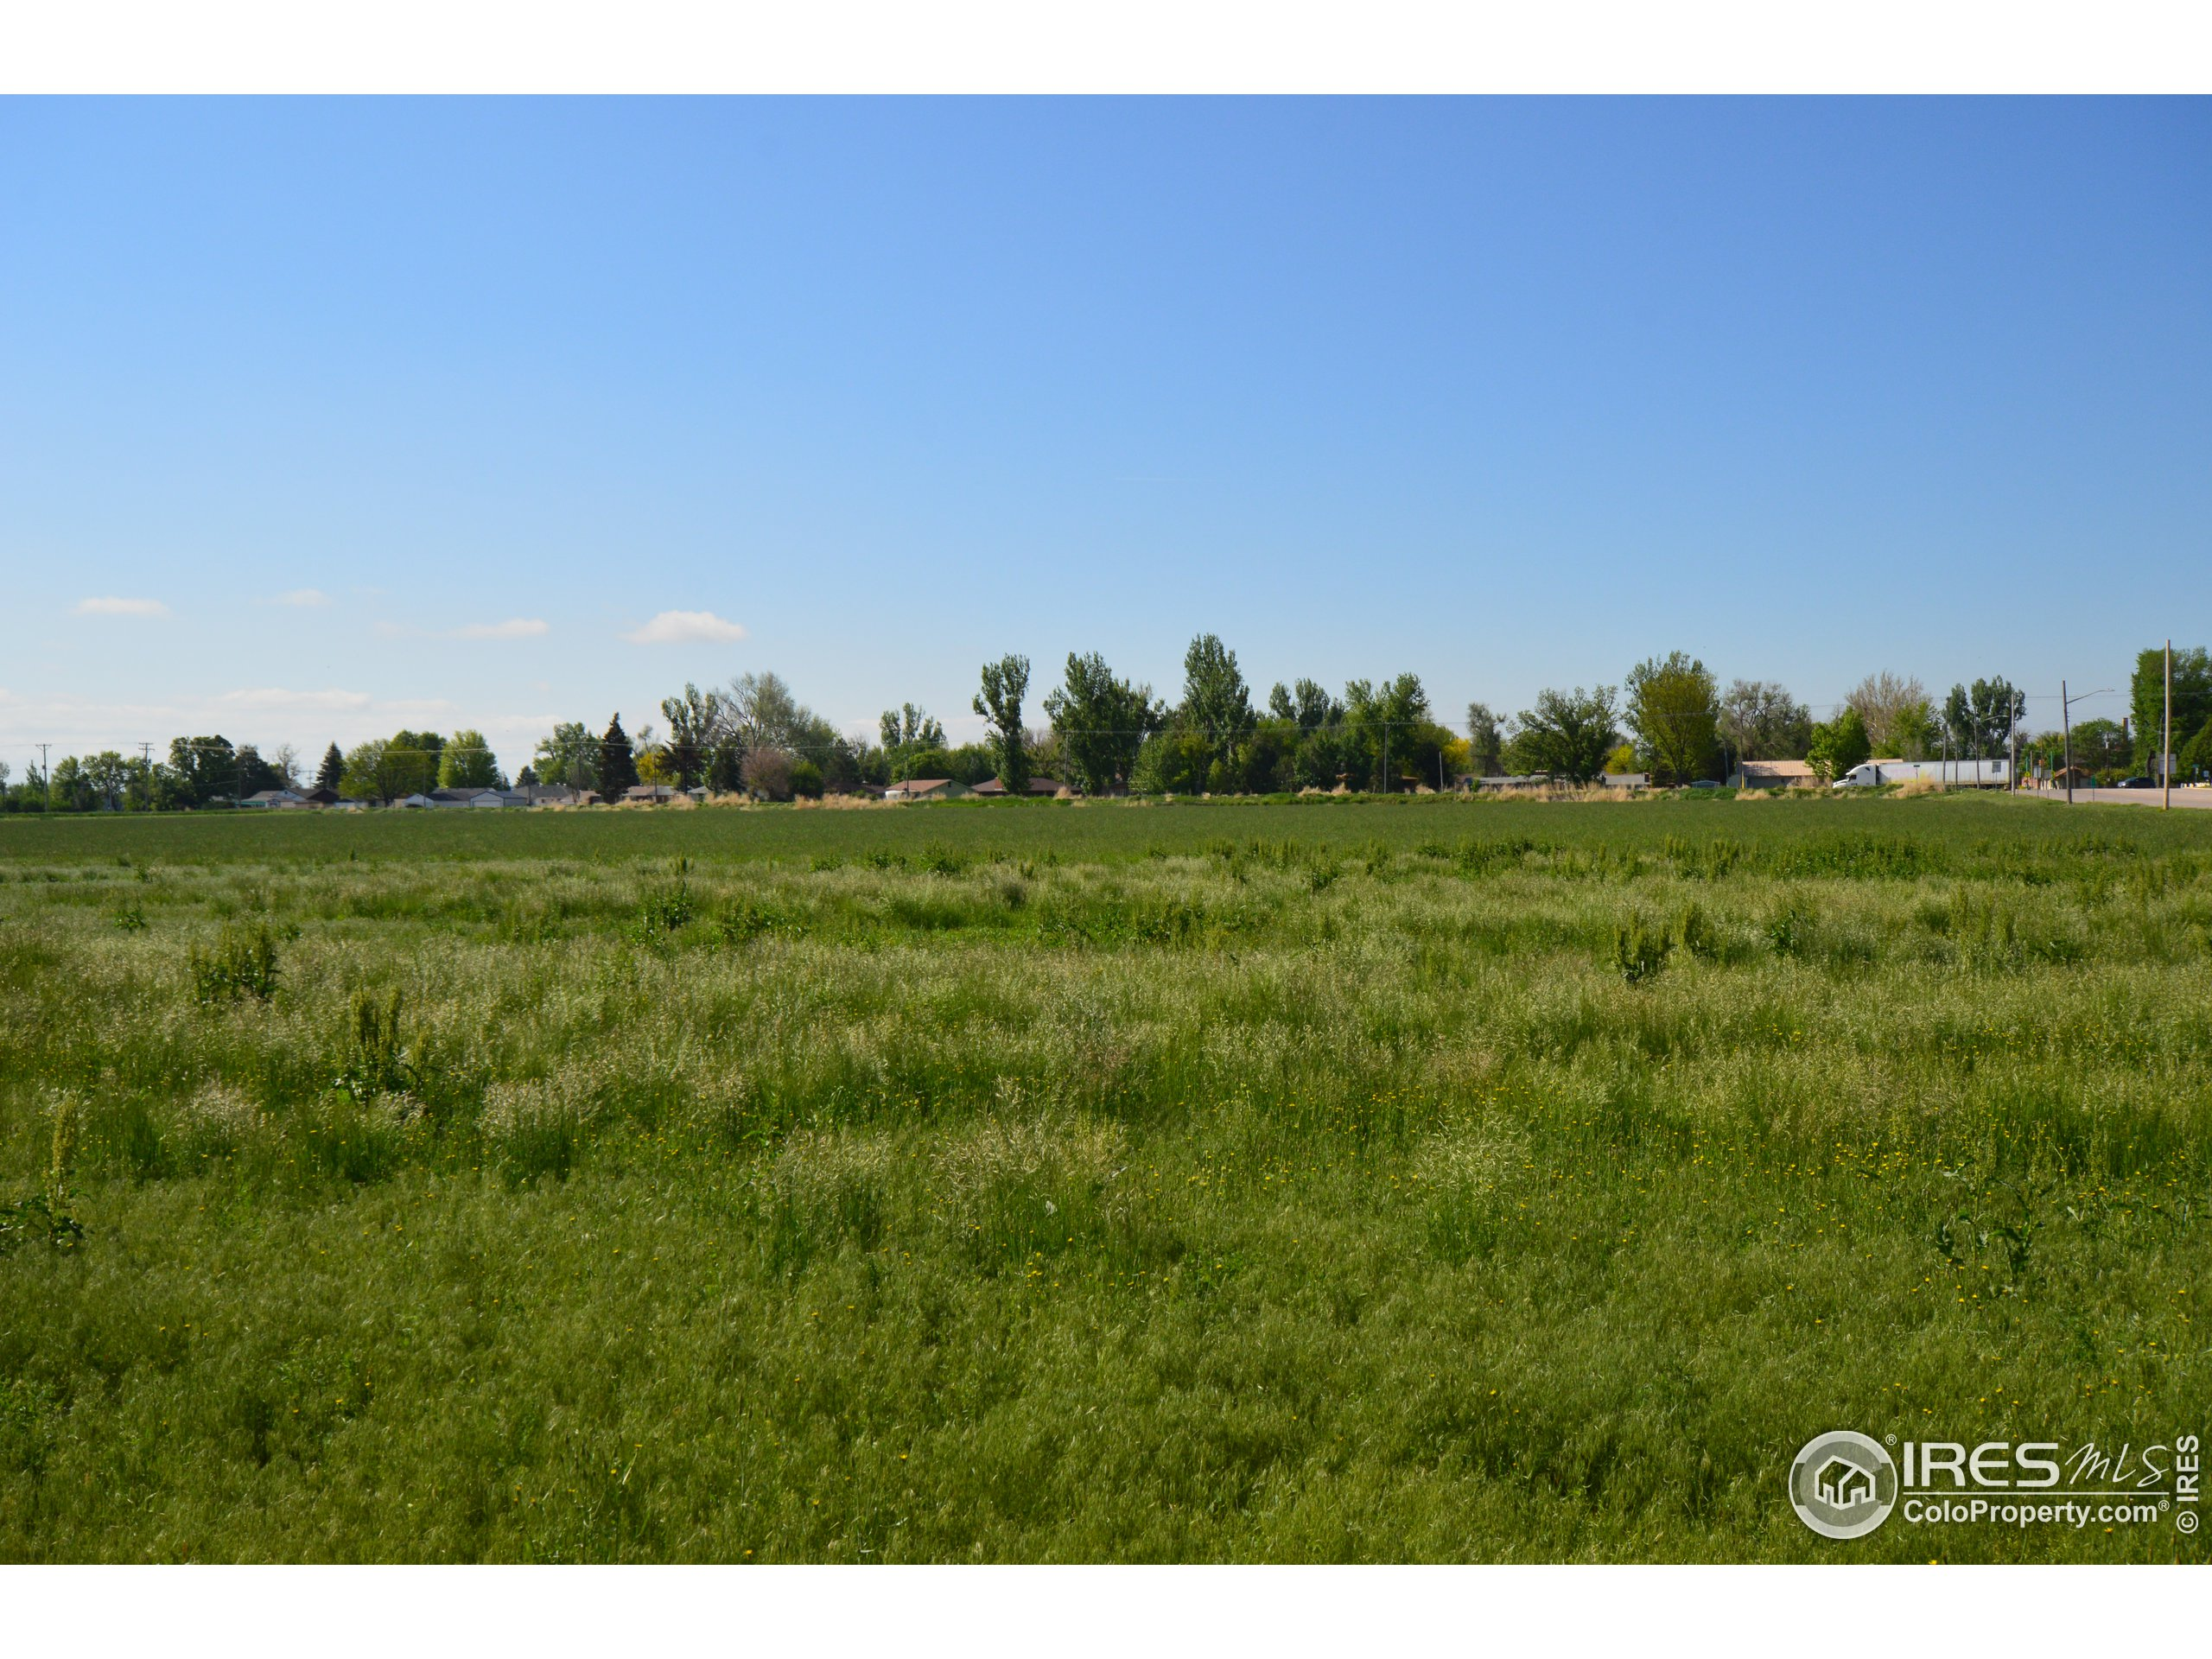 Over 1.5 acres of Commercial Land for Sale!